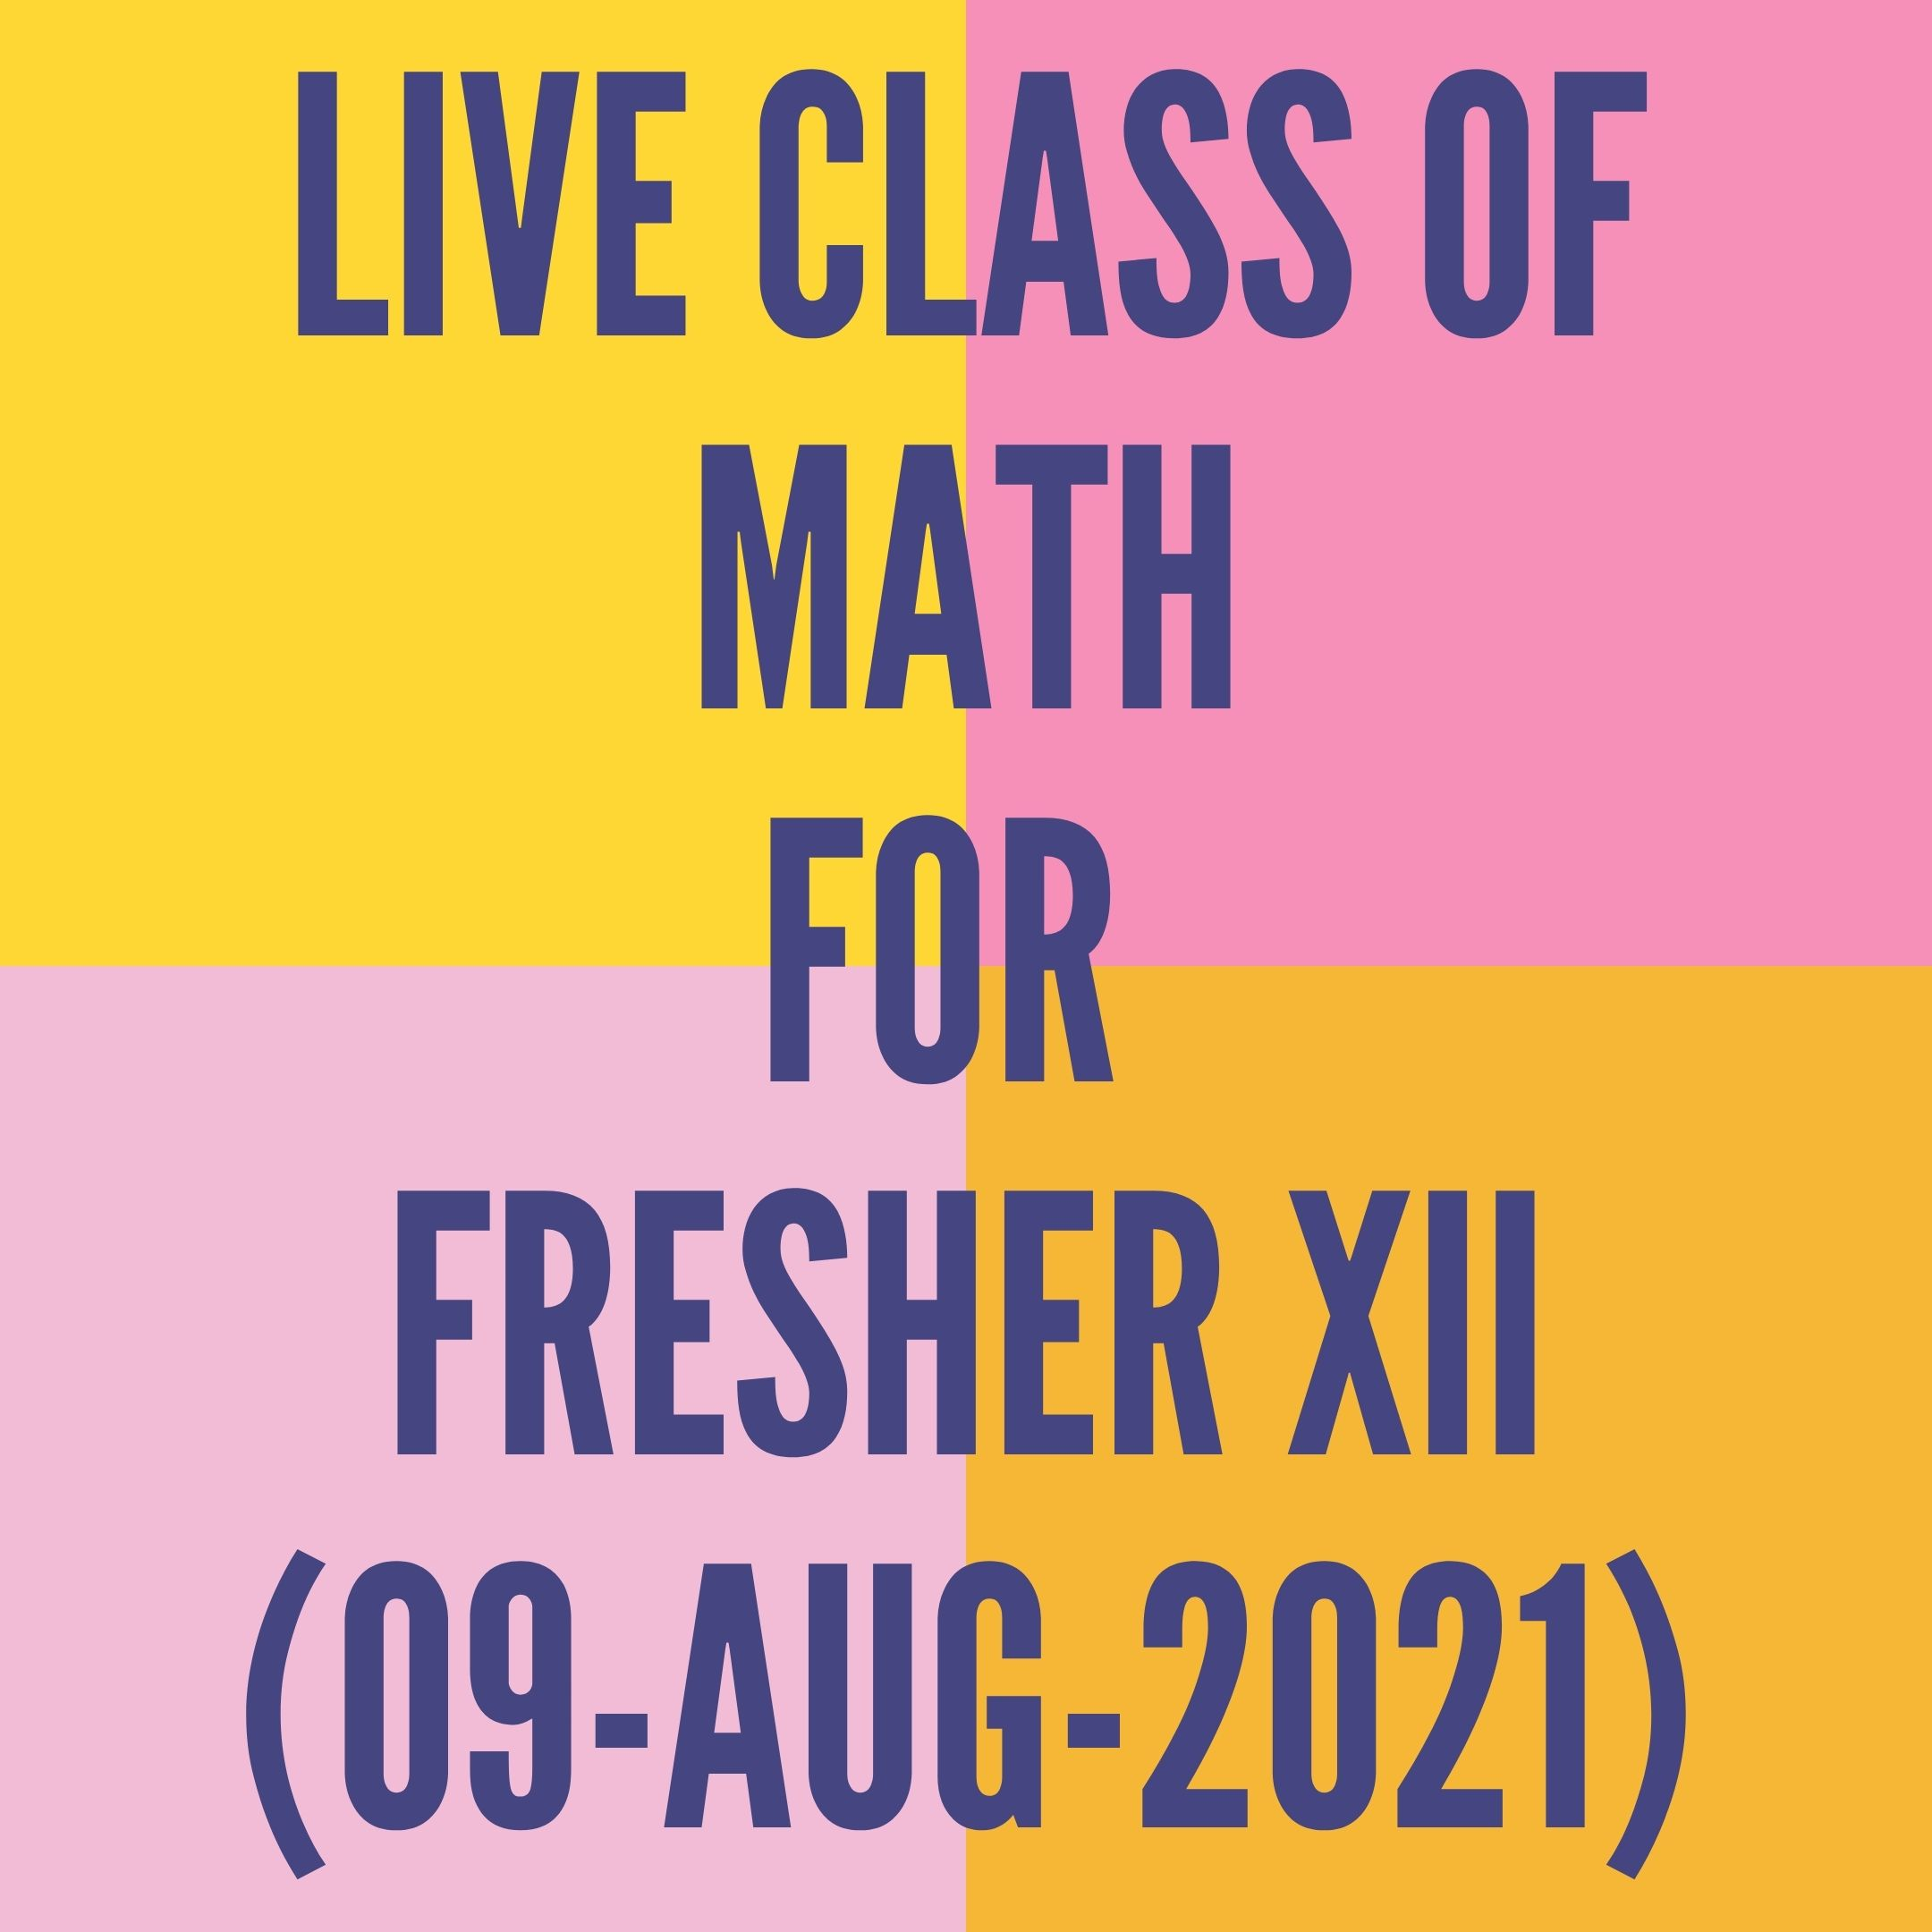 LIVE CLASS OF MATH FOR FRESHER (09-AUG-2021)